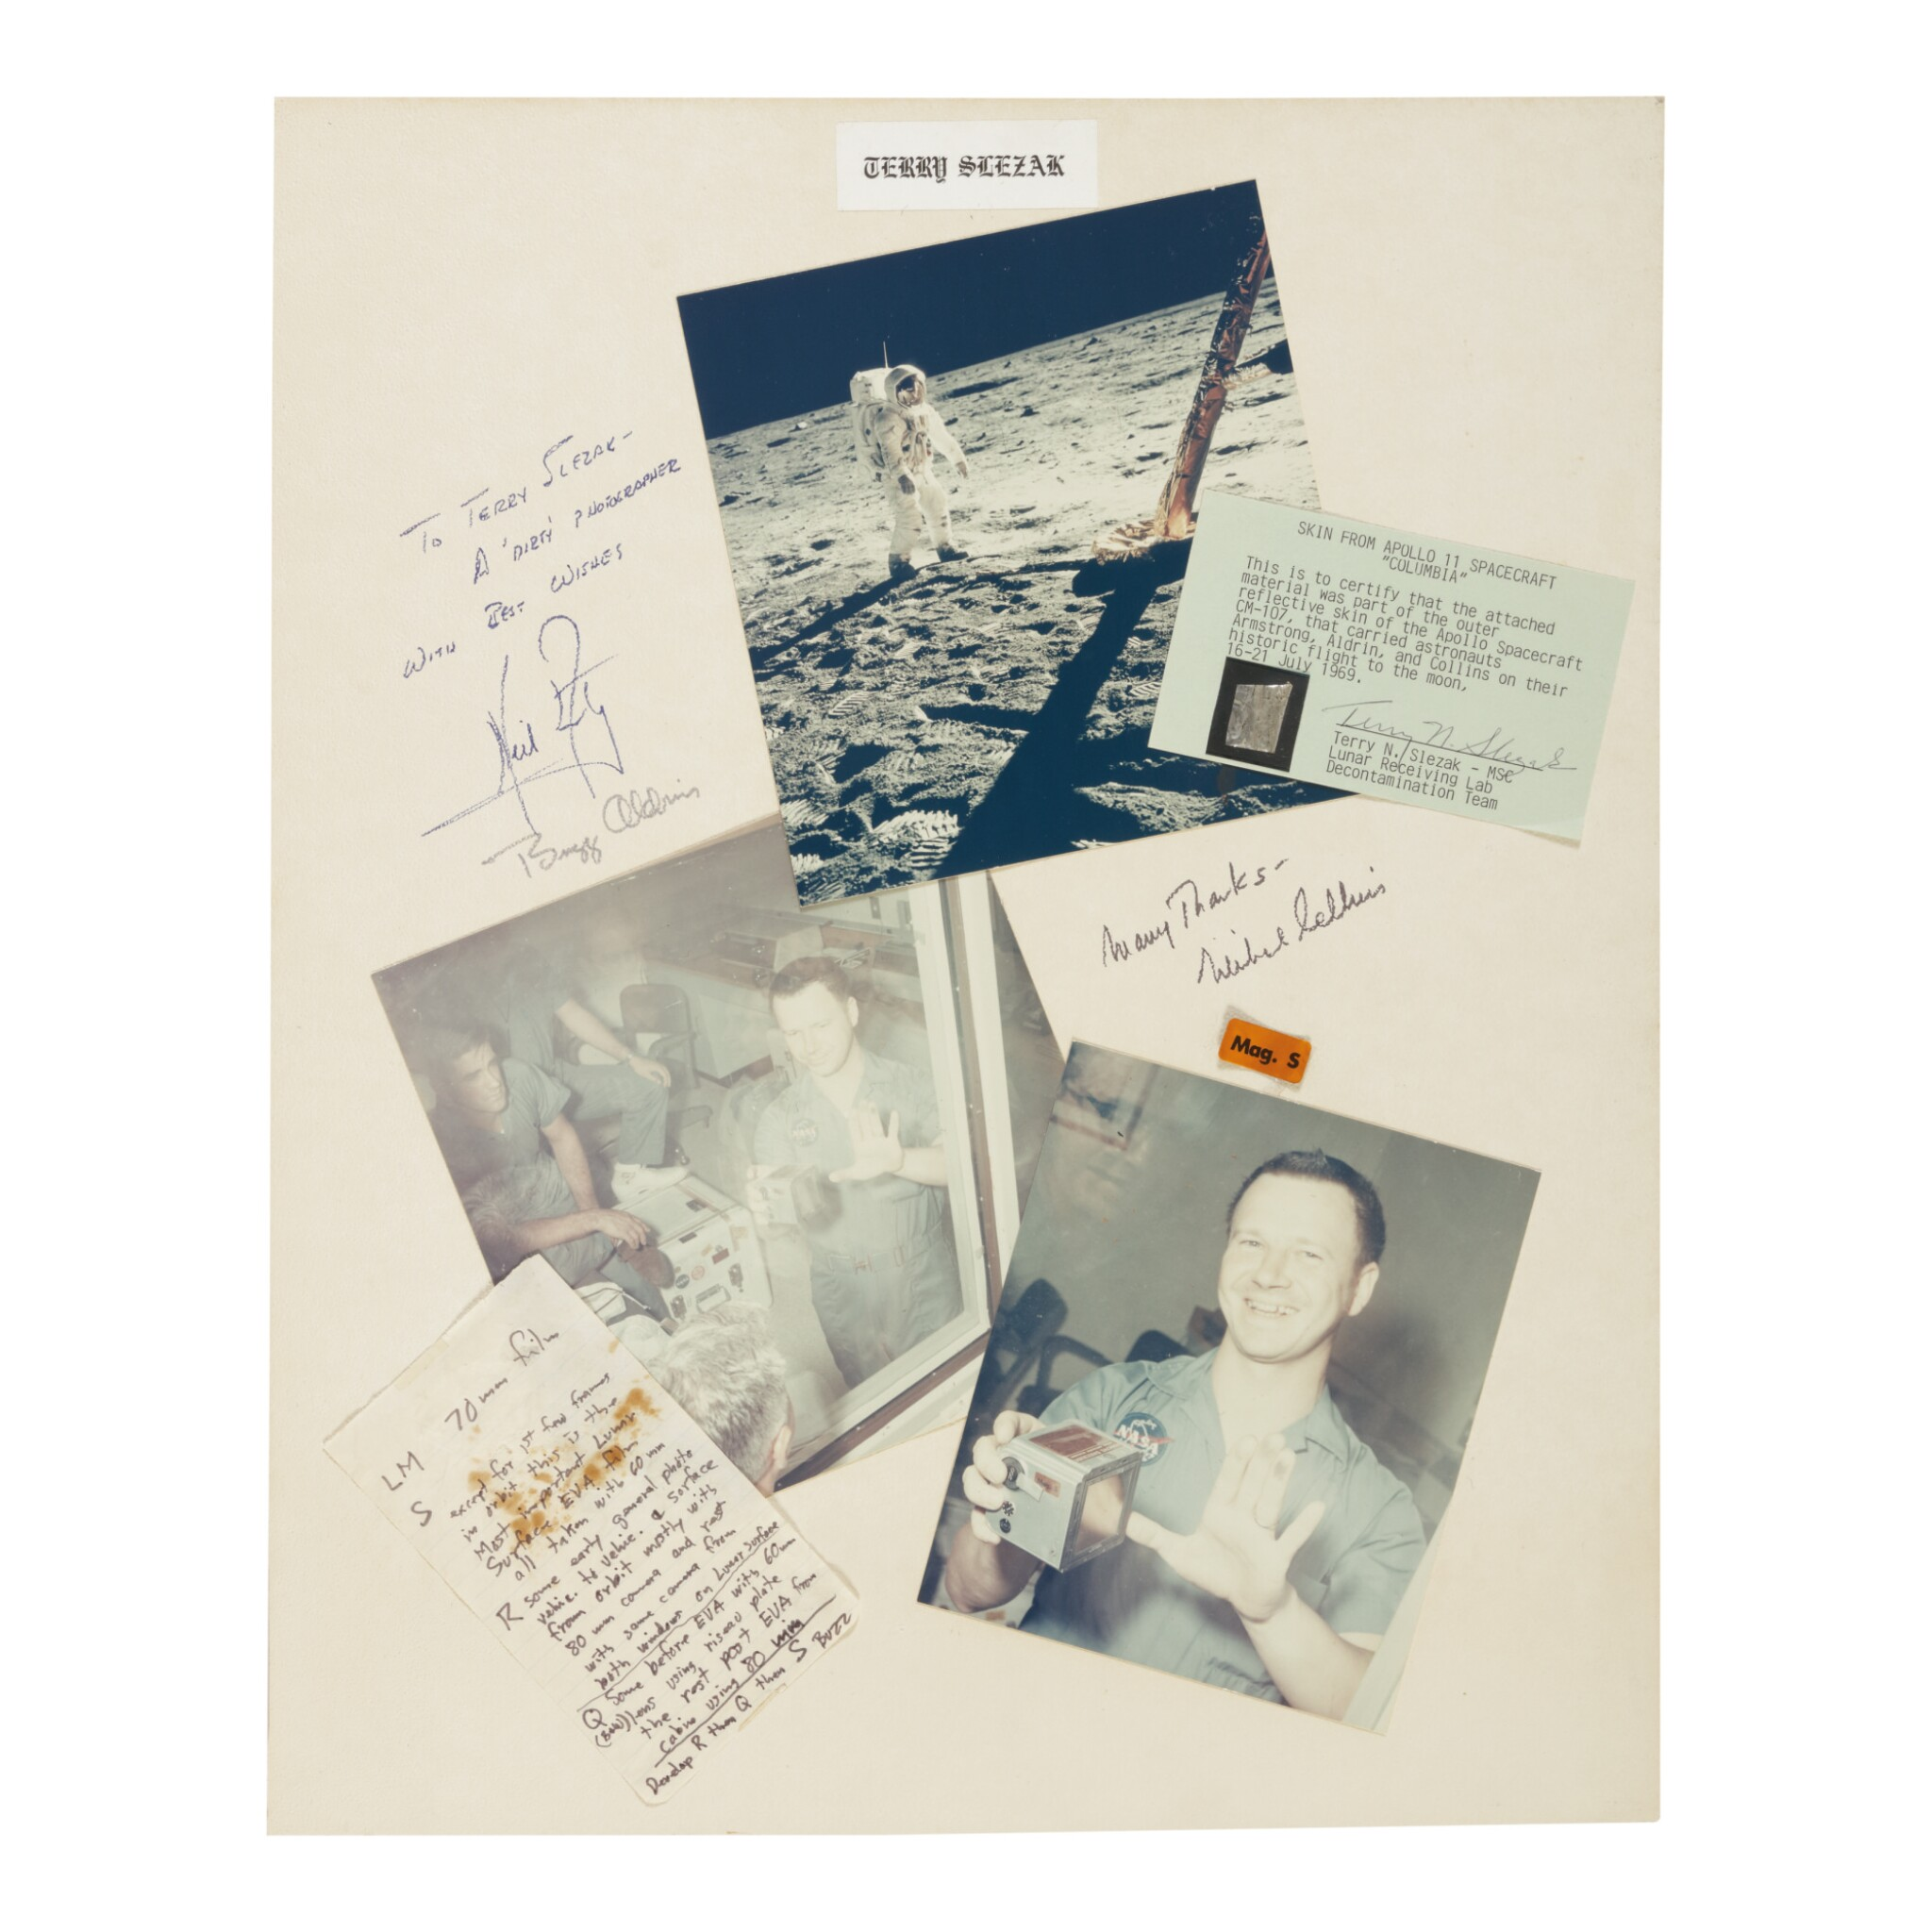 """View full screen - View 1 of Lot 107. [APOLLO 11]. LUNAR SURFACE FLOWN FILM MAG """"S"""" LABEL, 1ST ALS TO BE WRITTEN ON THE MOON, AND CREW SIGNED PRESENTATION."""